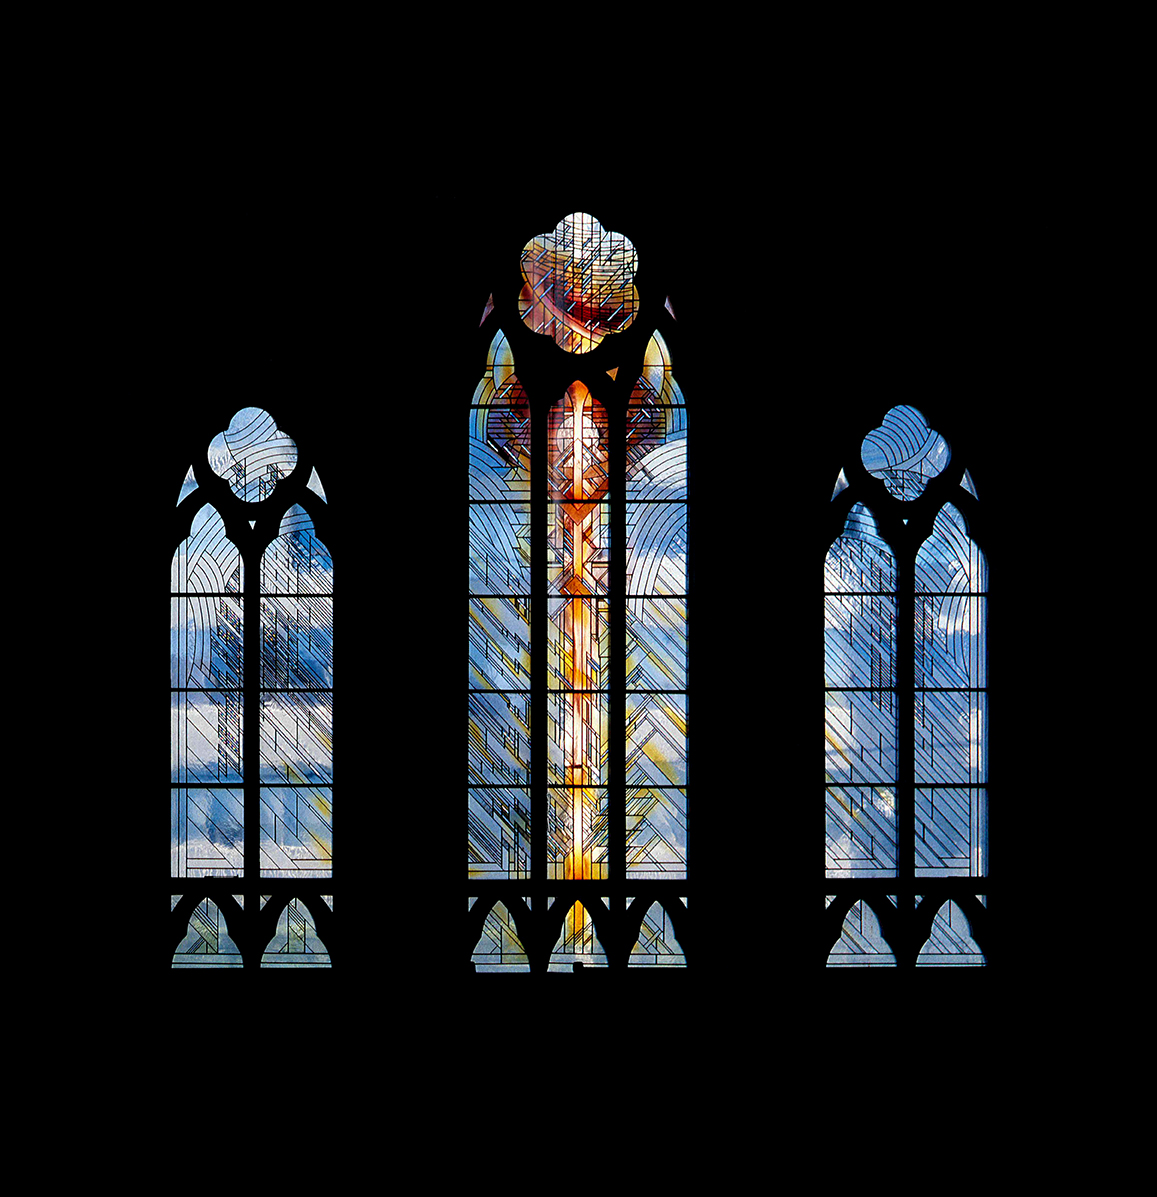 383 Jarvis Stained Glass_REV.jpg